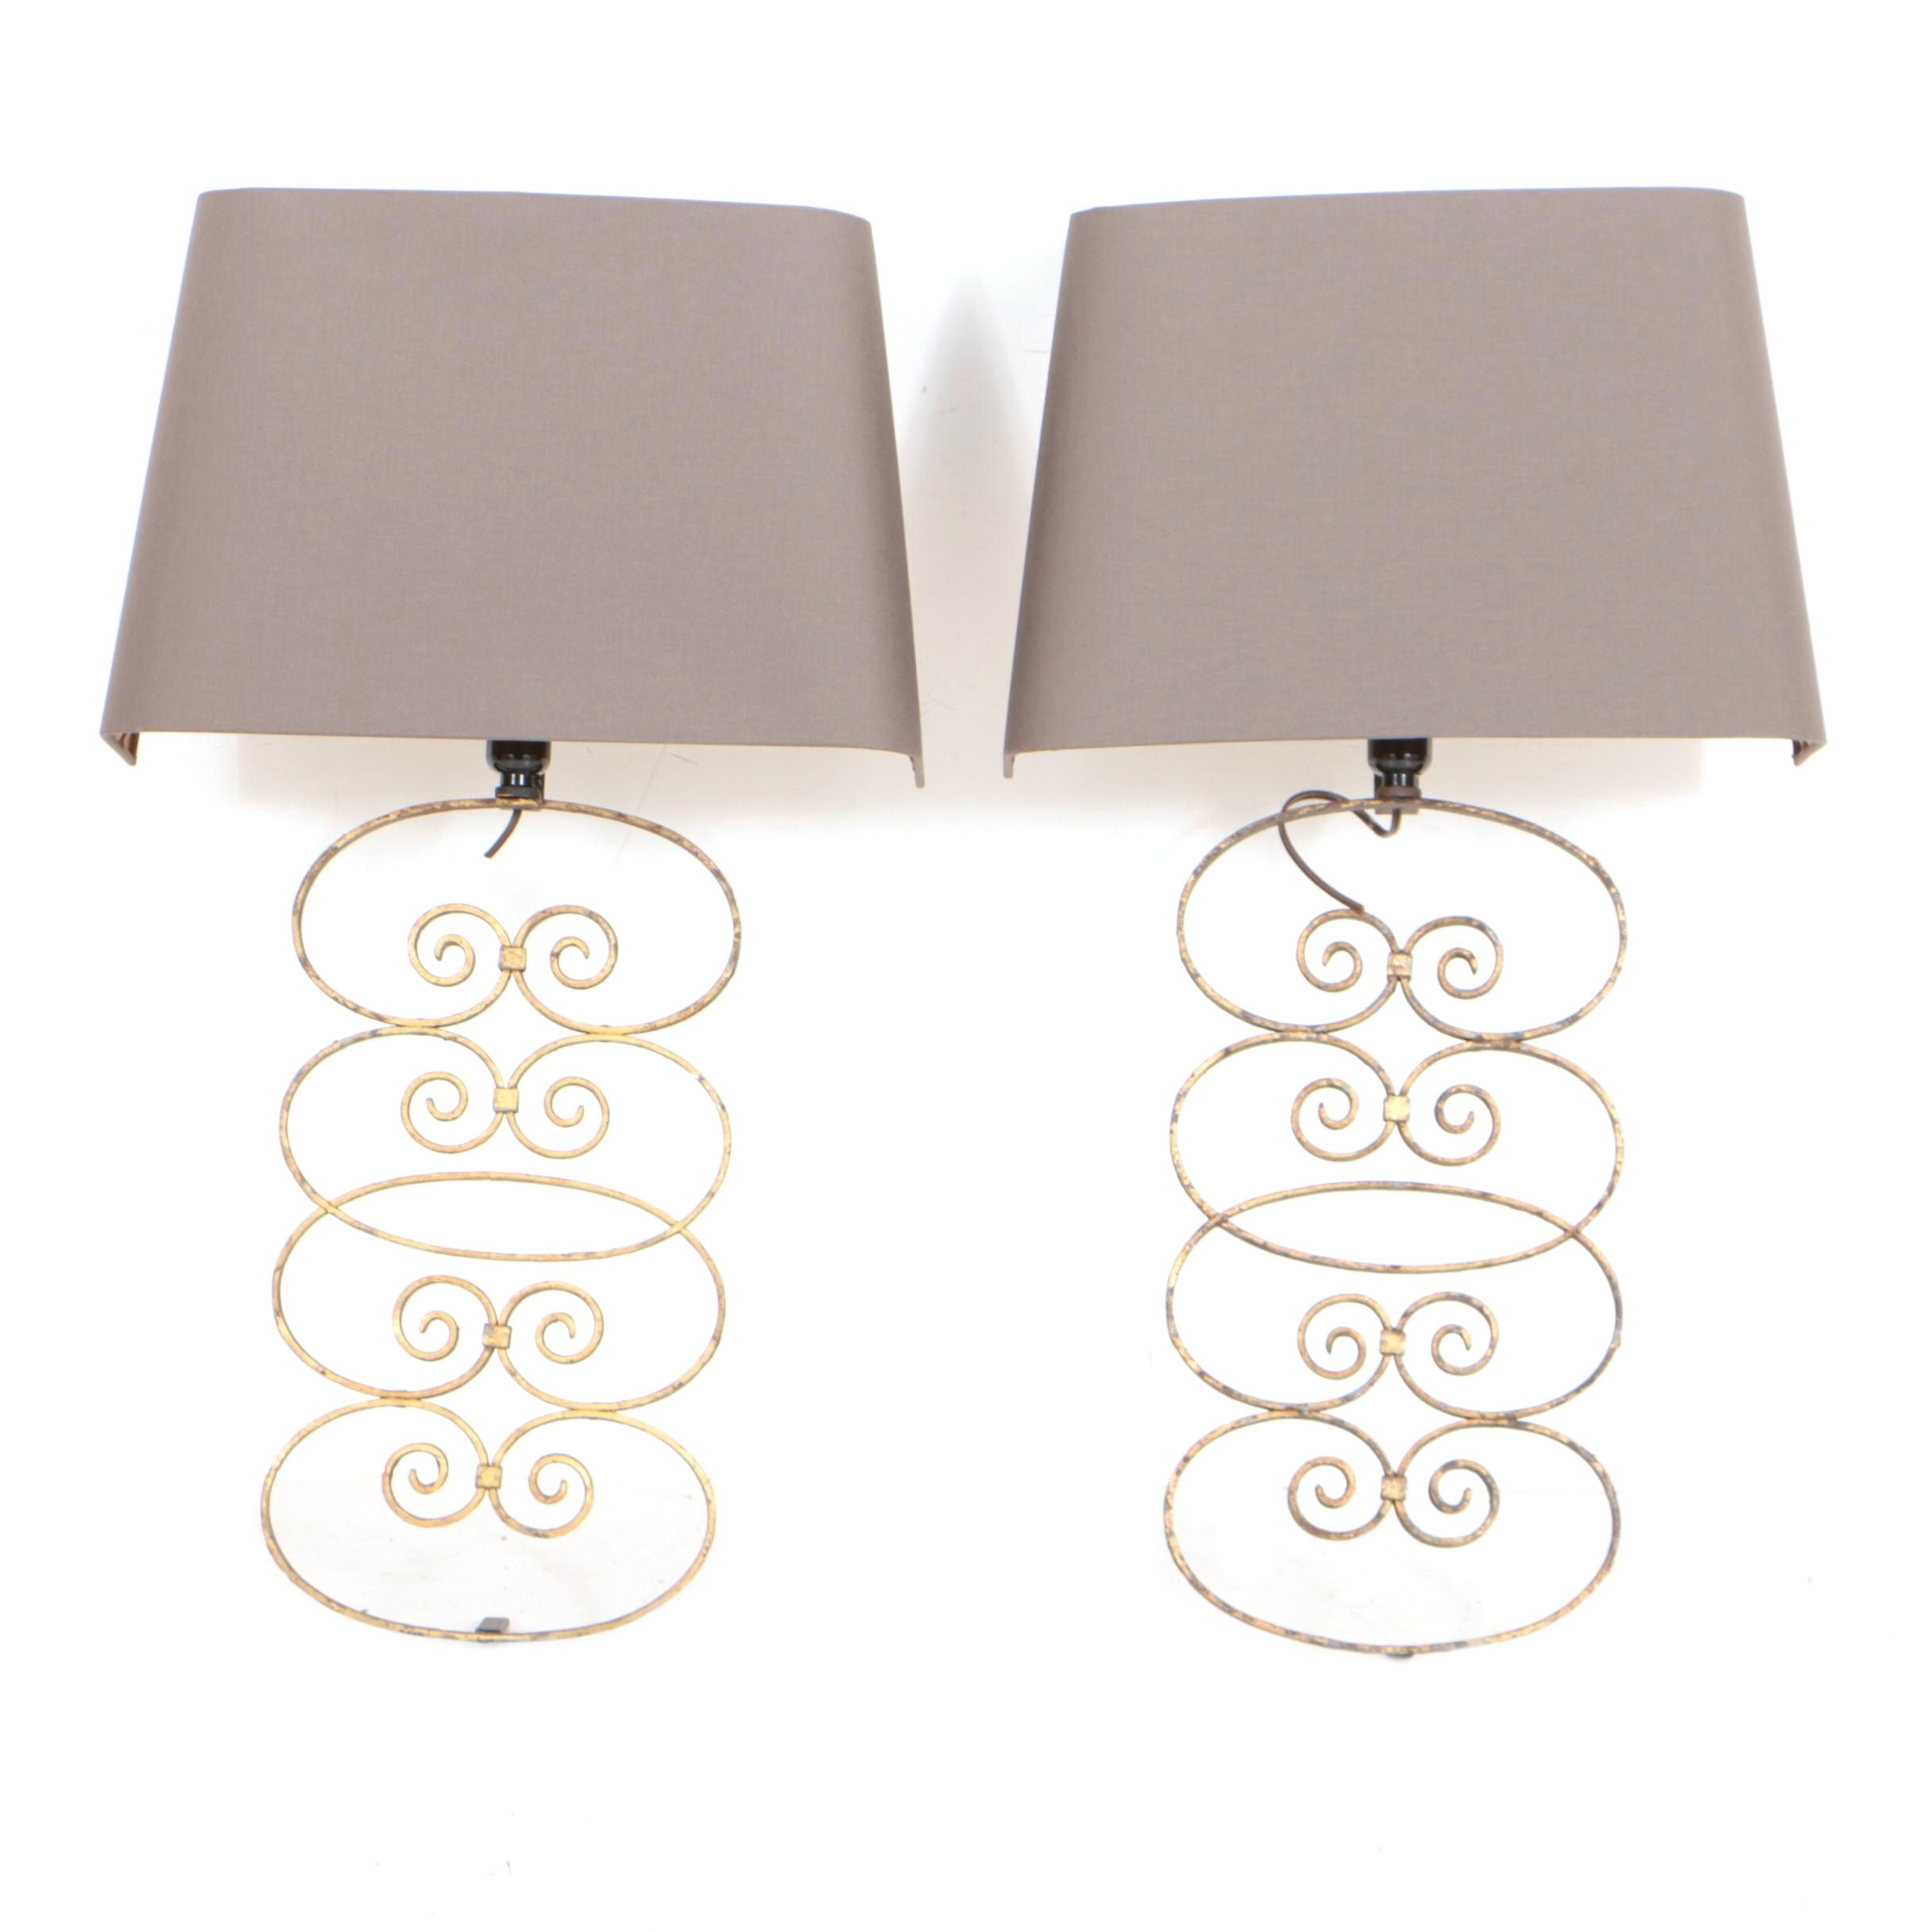 Scrolled Metal Wall Sconces with Custom Silk Shades